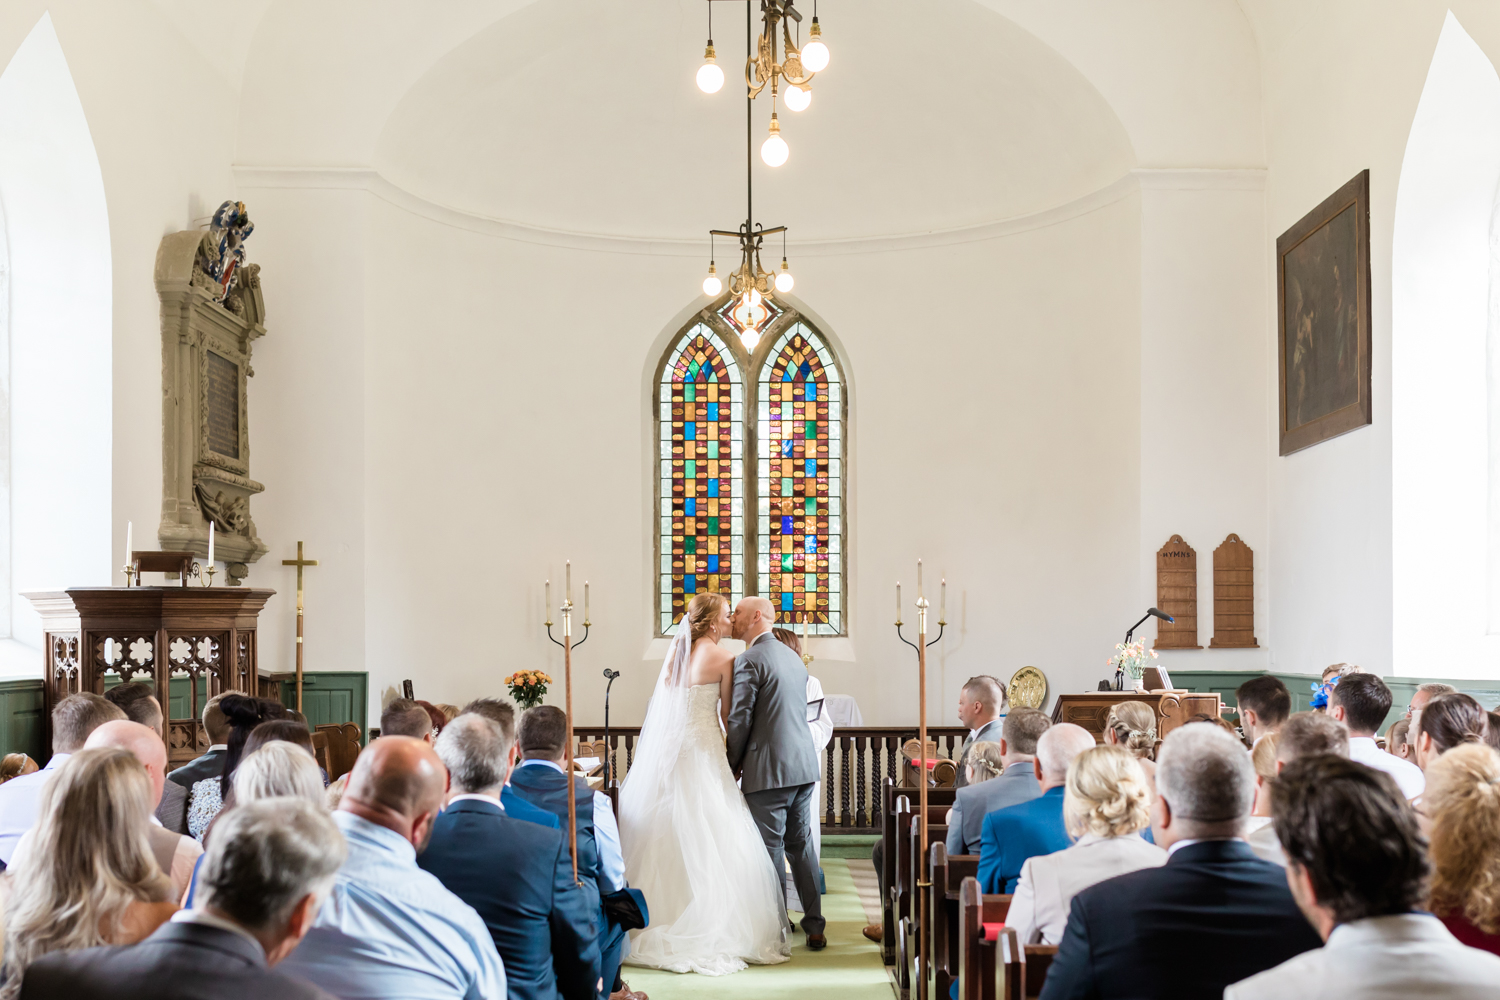 Wedding photography at Old ravenfield church